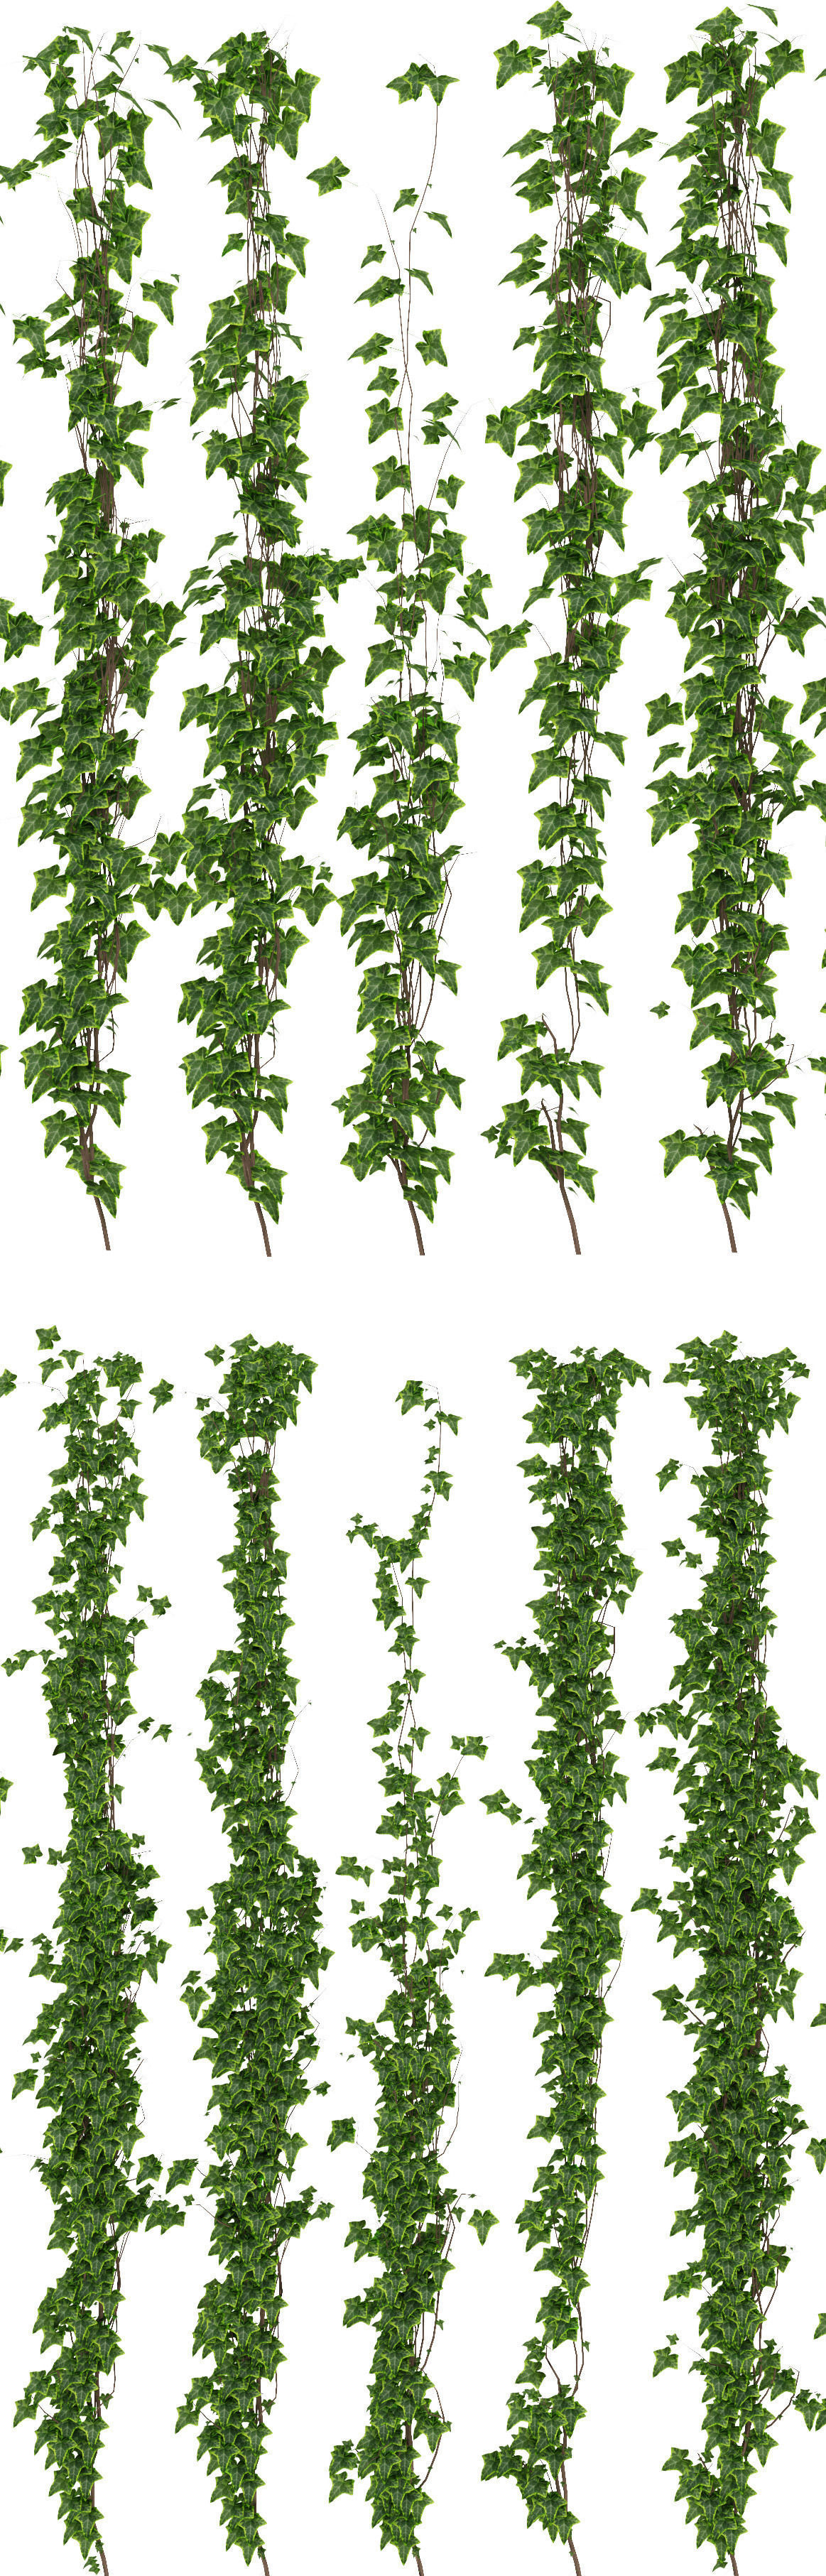 3D Wall of ivy leaves | CGTrader